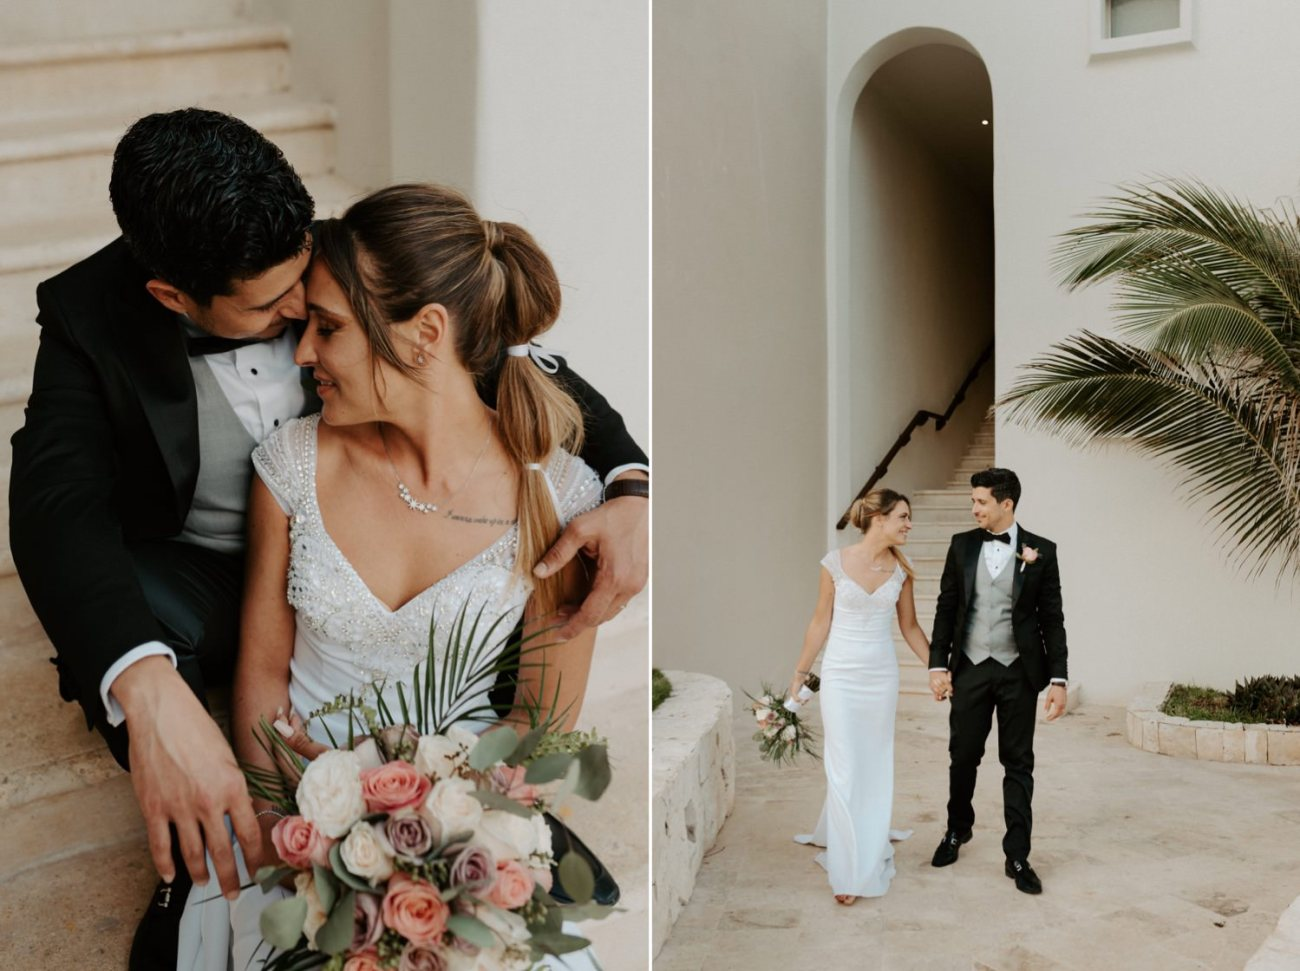 Cancun Destination Wedding Mexico Tulum Wedding Photographer Anais Possamai Photography 052